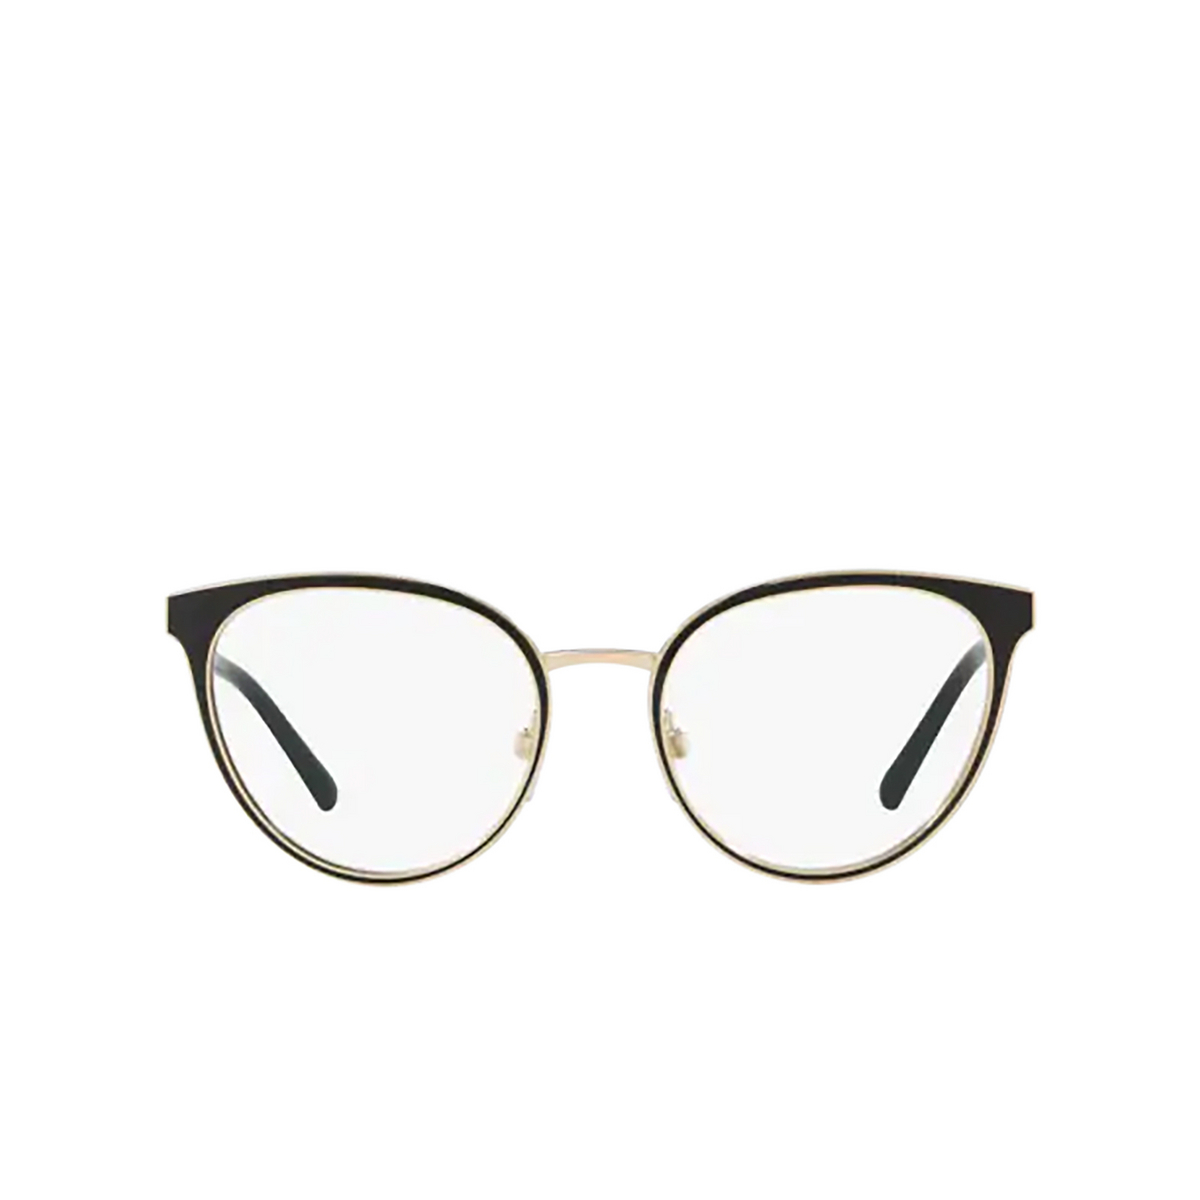 Burberry® Cat-eye Eyeglasses: BE1324 color Black / Light Gold 1262 - front view.